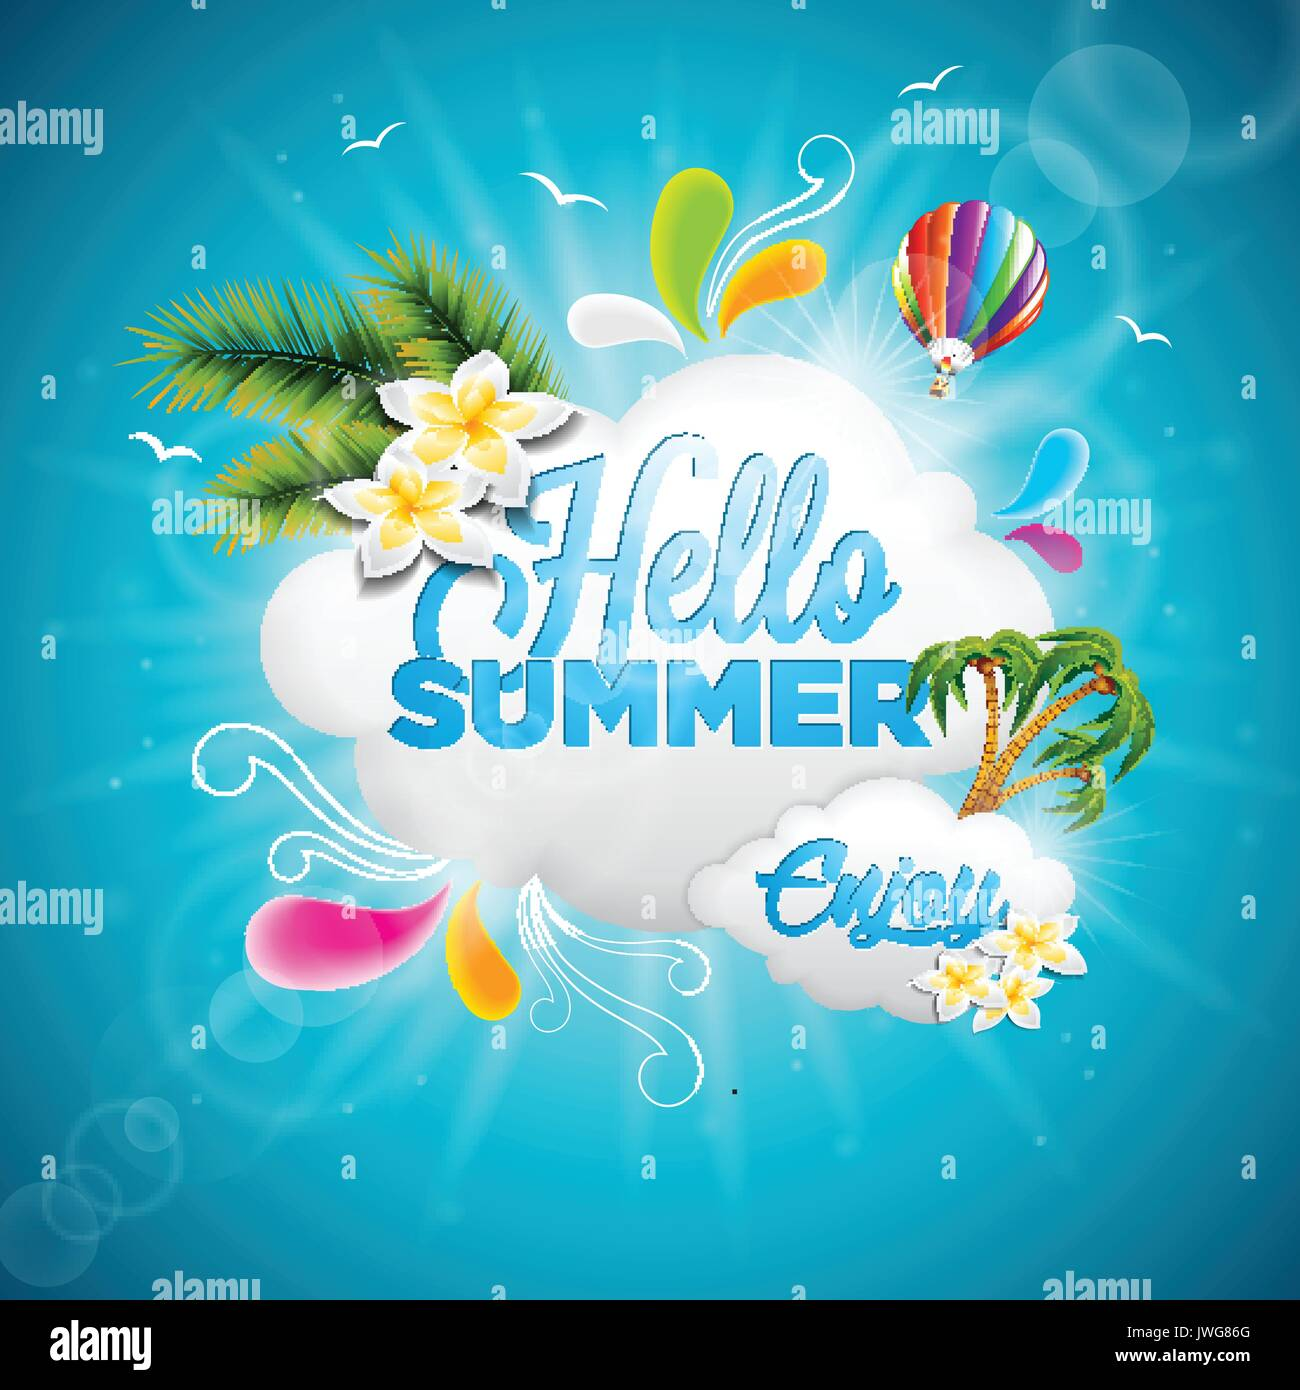 Vector Hello Summer Holiday Typographic Illustration With Tropical Plants,  Flower And Hot Air Balloon On Blue Background. Eps 10 Design.